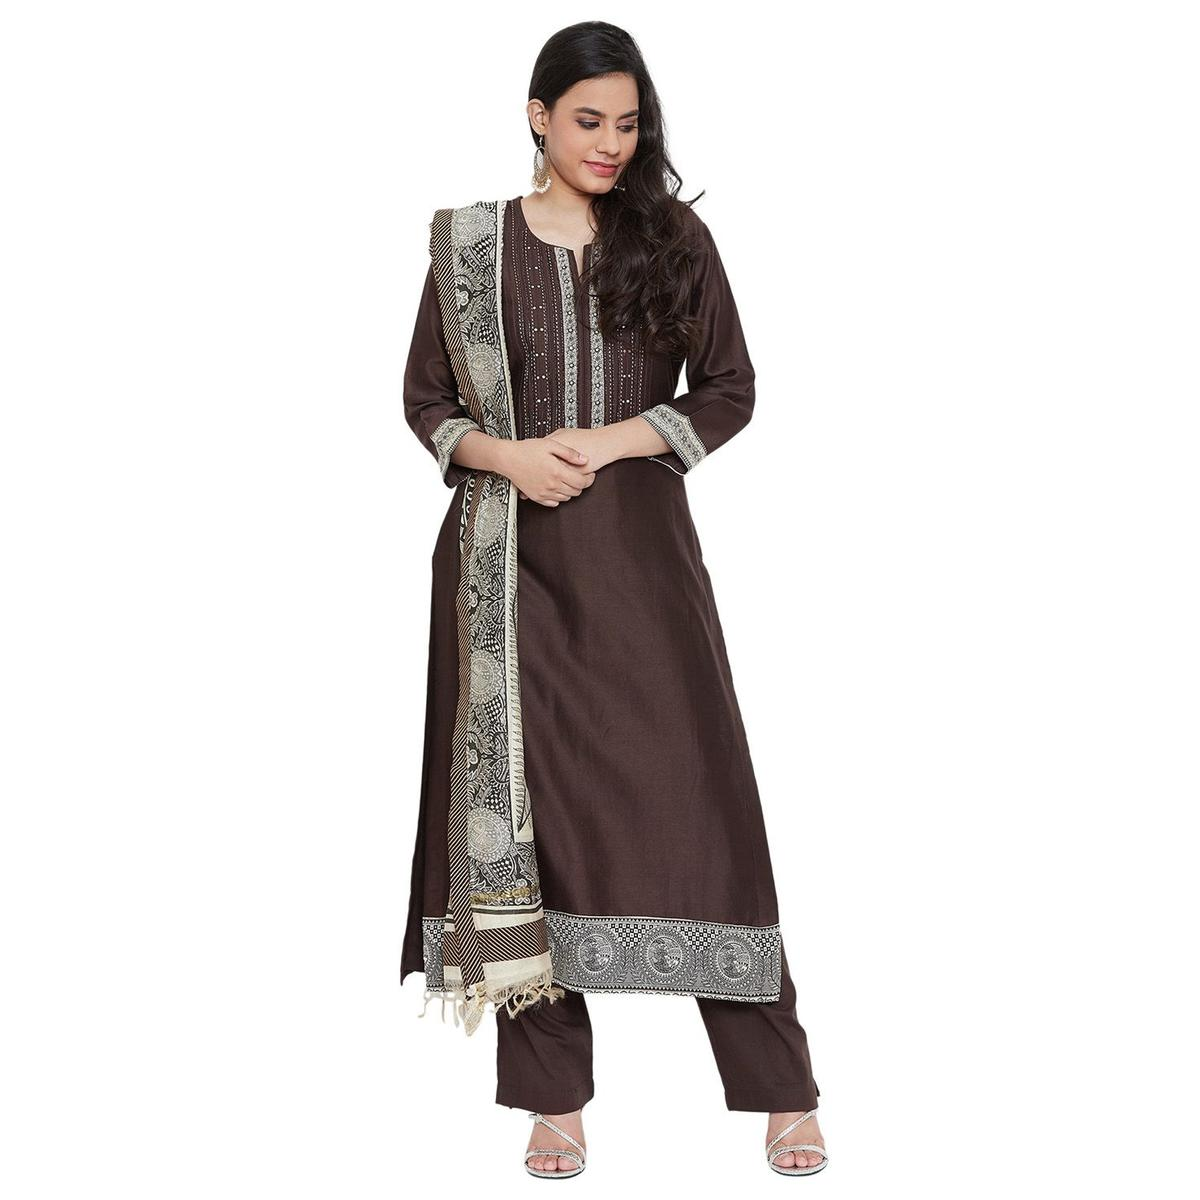 Vastrangana Gorgeous Brown Colored Party Wear Embroiered Naayaab Silk-Cambric Cotton Dress Material